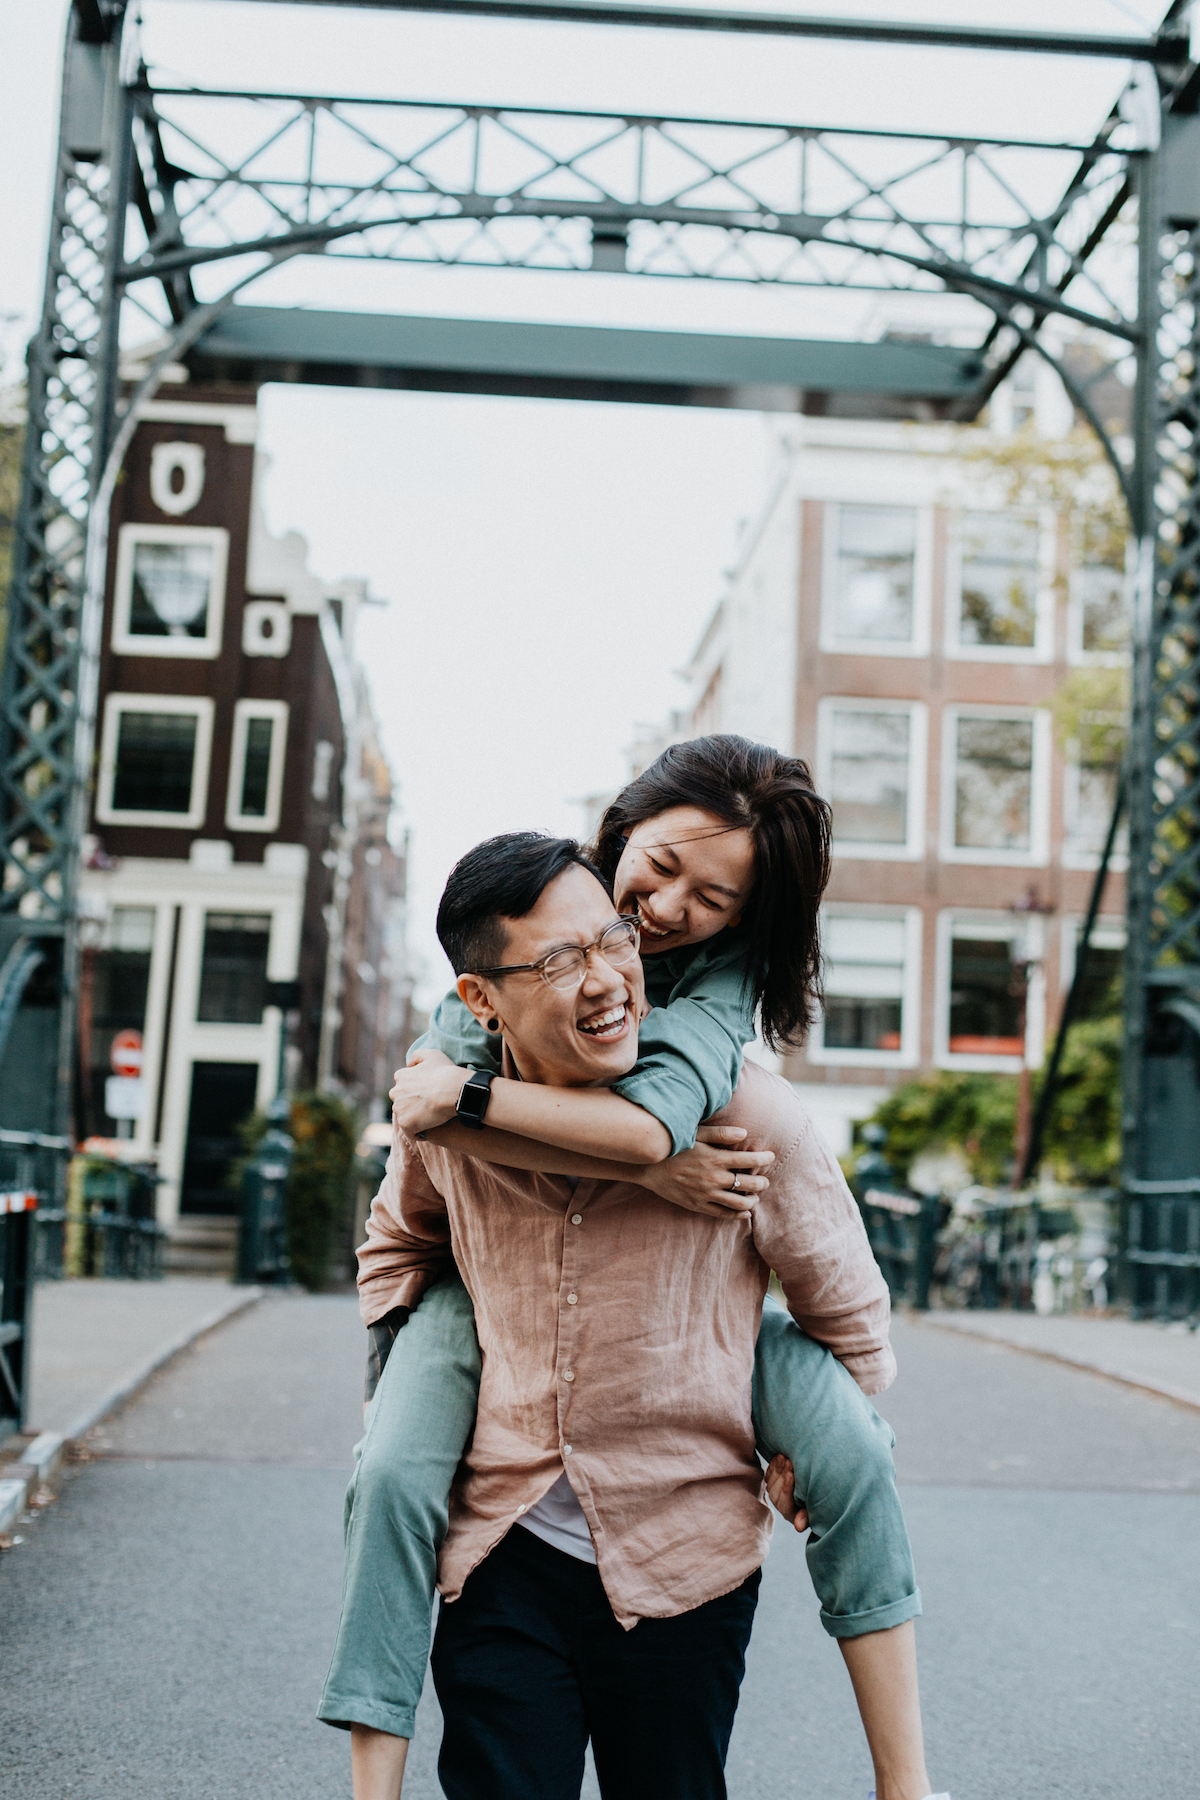 A woman piggybacks her boyfriend and the two of them laugh while crossing a famous bridge in Amsterdam, Netherlands.